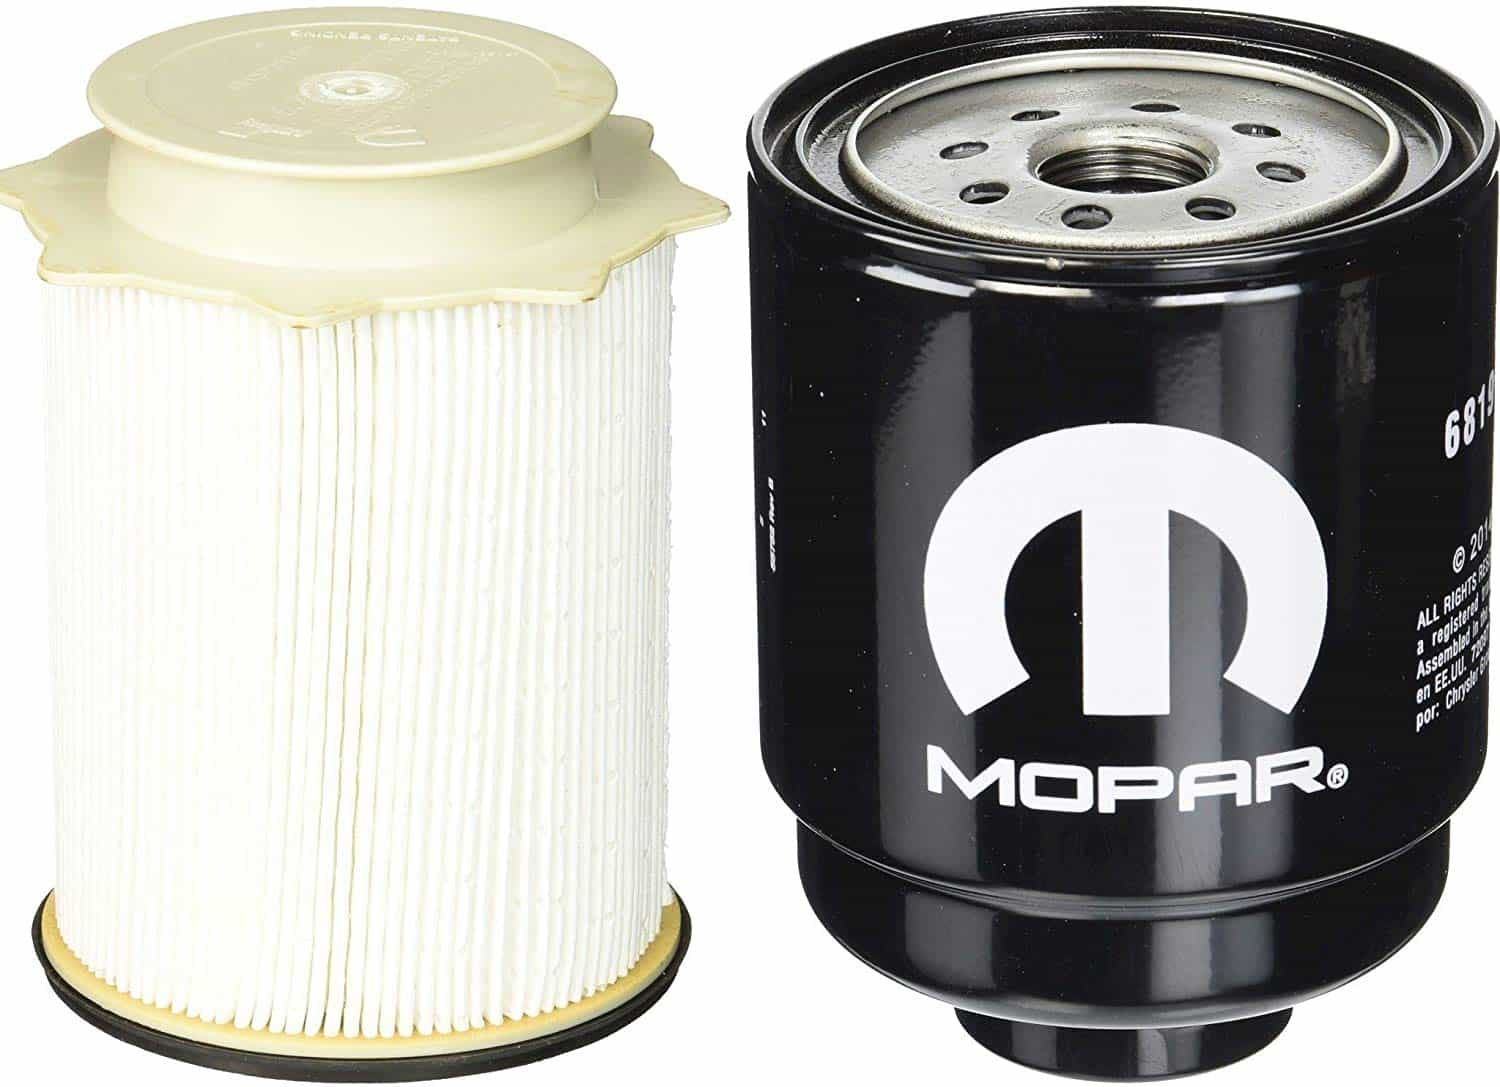 Dodge-Ram-6.7-Liter-Diesel-Fuel-Filter-Water-Separator-Set-Mopar-OEM